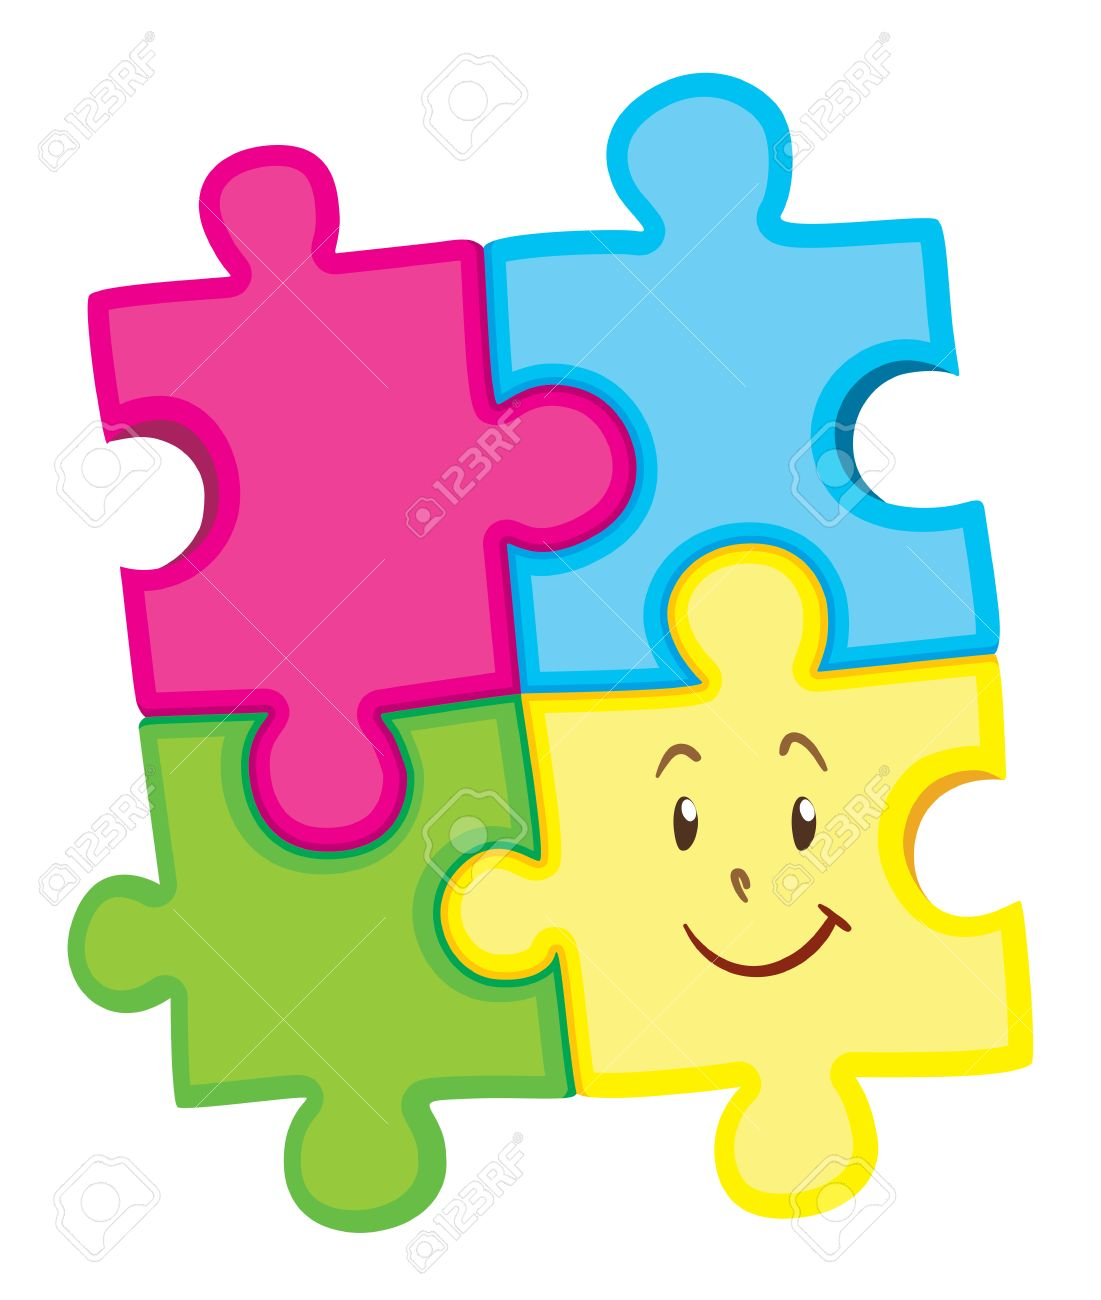 hight resolution of jigsaw puzzle pieces with happy face illustration stock vector 49650697